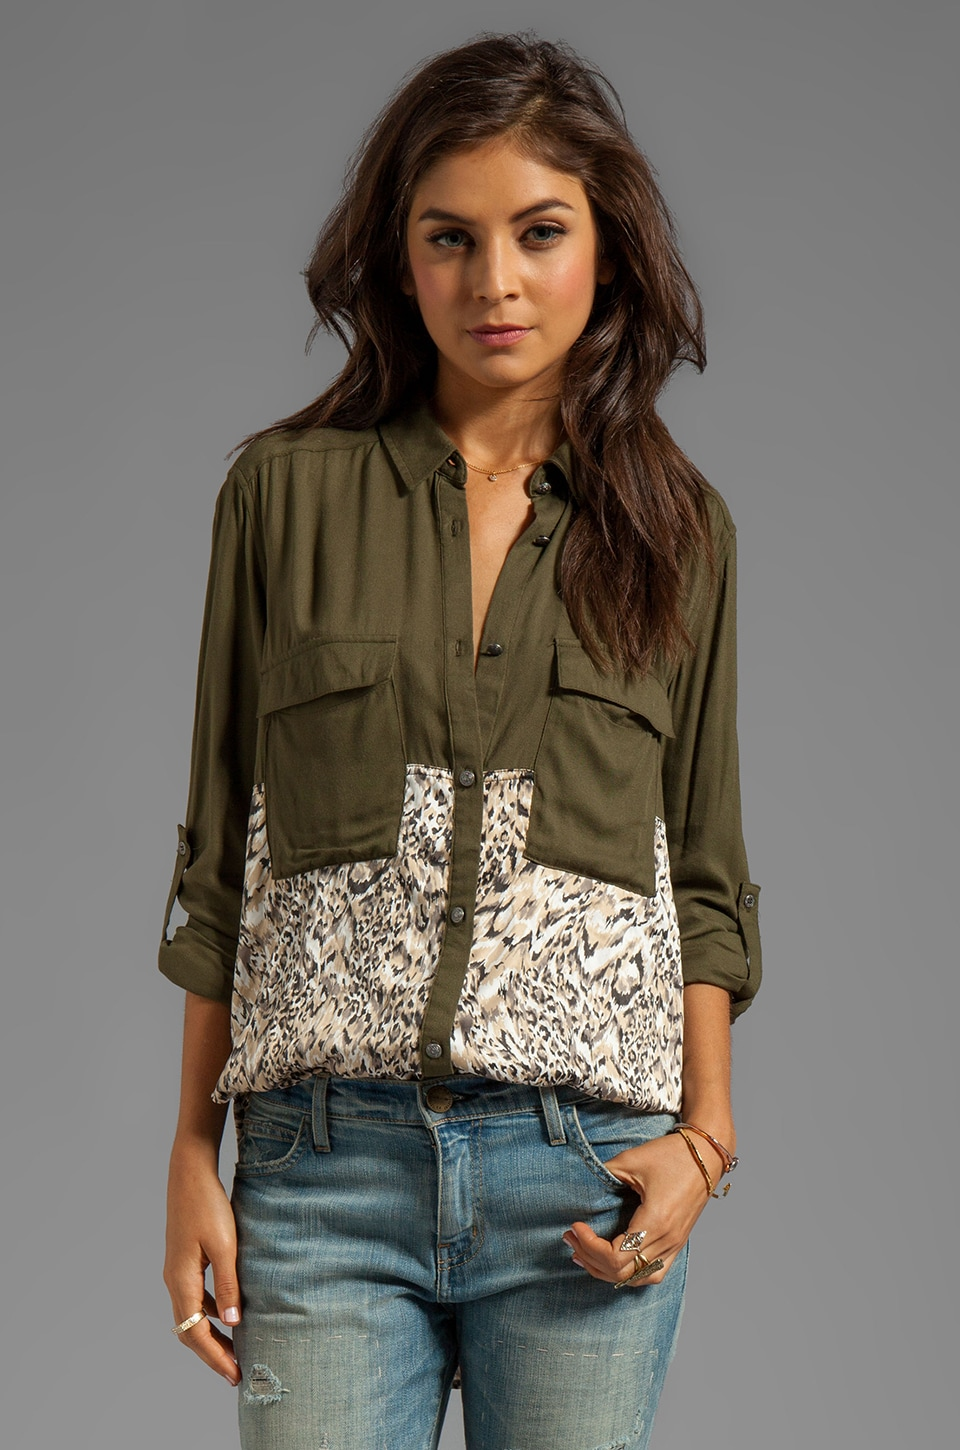 Free People Welcome to the Jungle Top in Army Combo